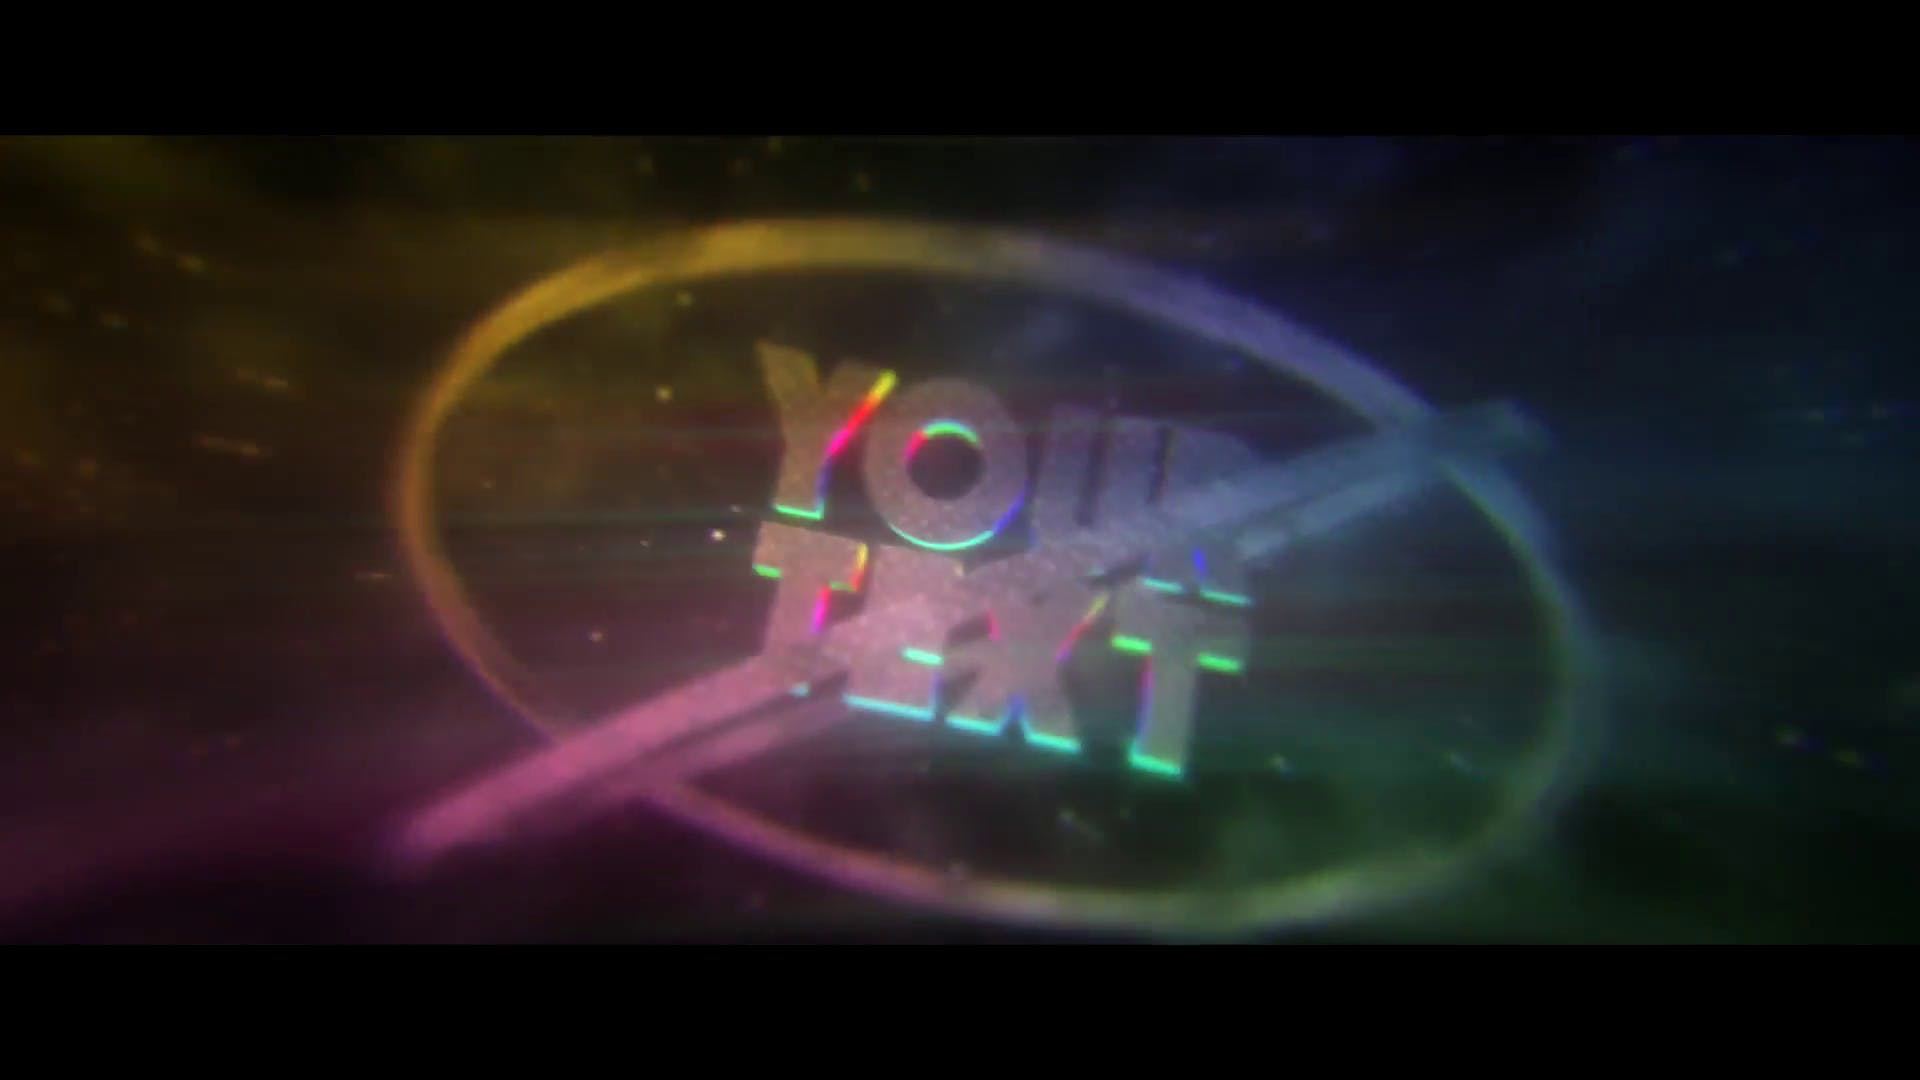 Awesome Rainbow After Effects Cinema 4D Intro Template FREE DOWNLOAD